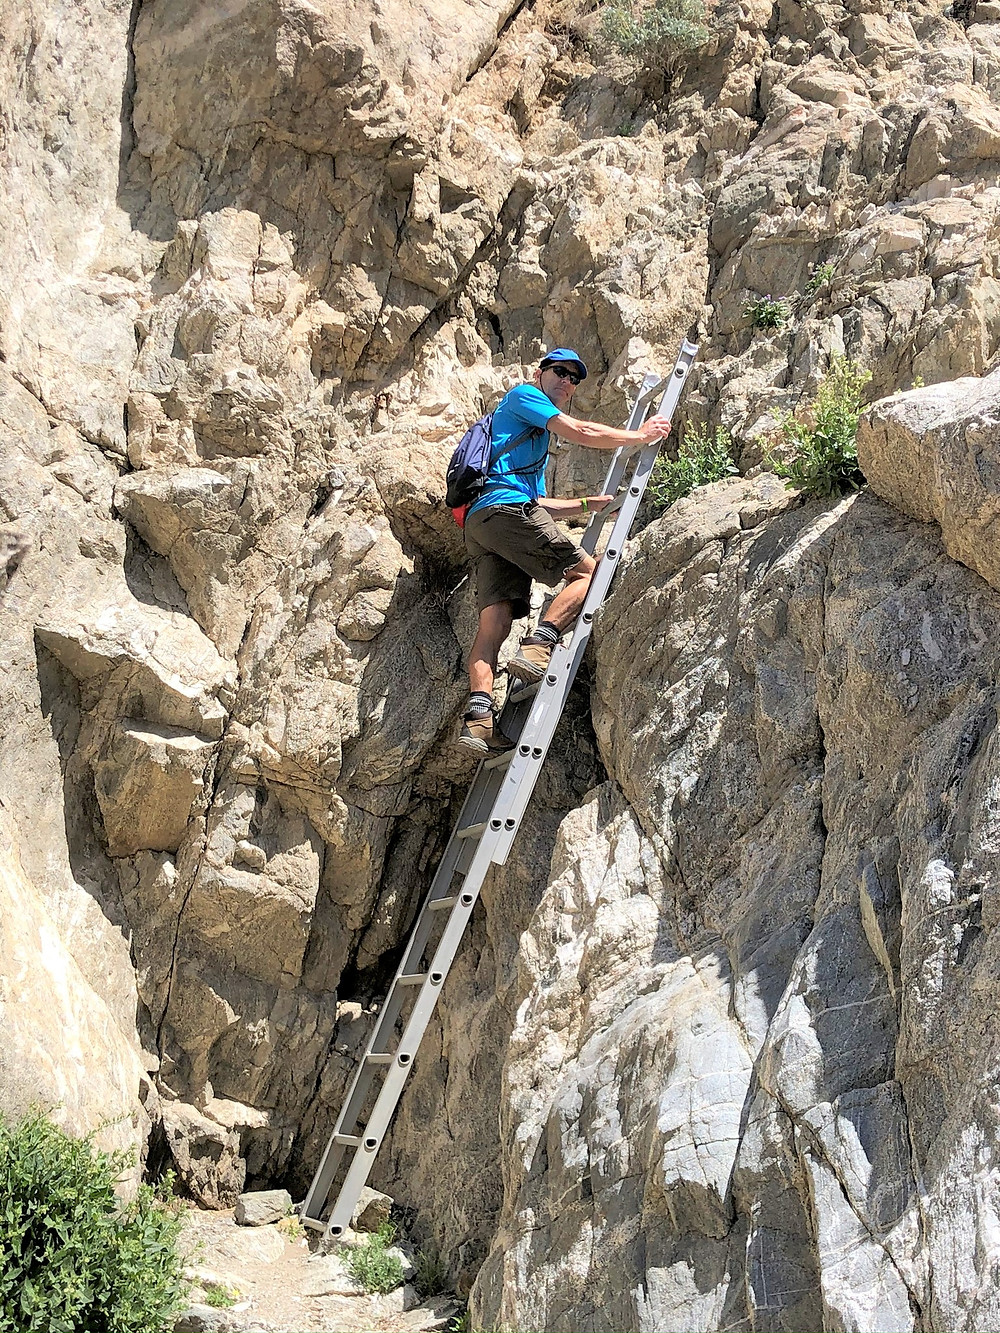 Descending by ladder on the Chocolate Drop Trail in the foothills of the Little San Bernardino Mountains in Desert Hot Springs